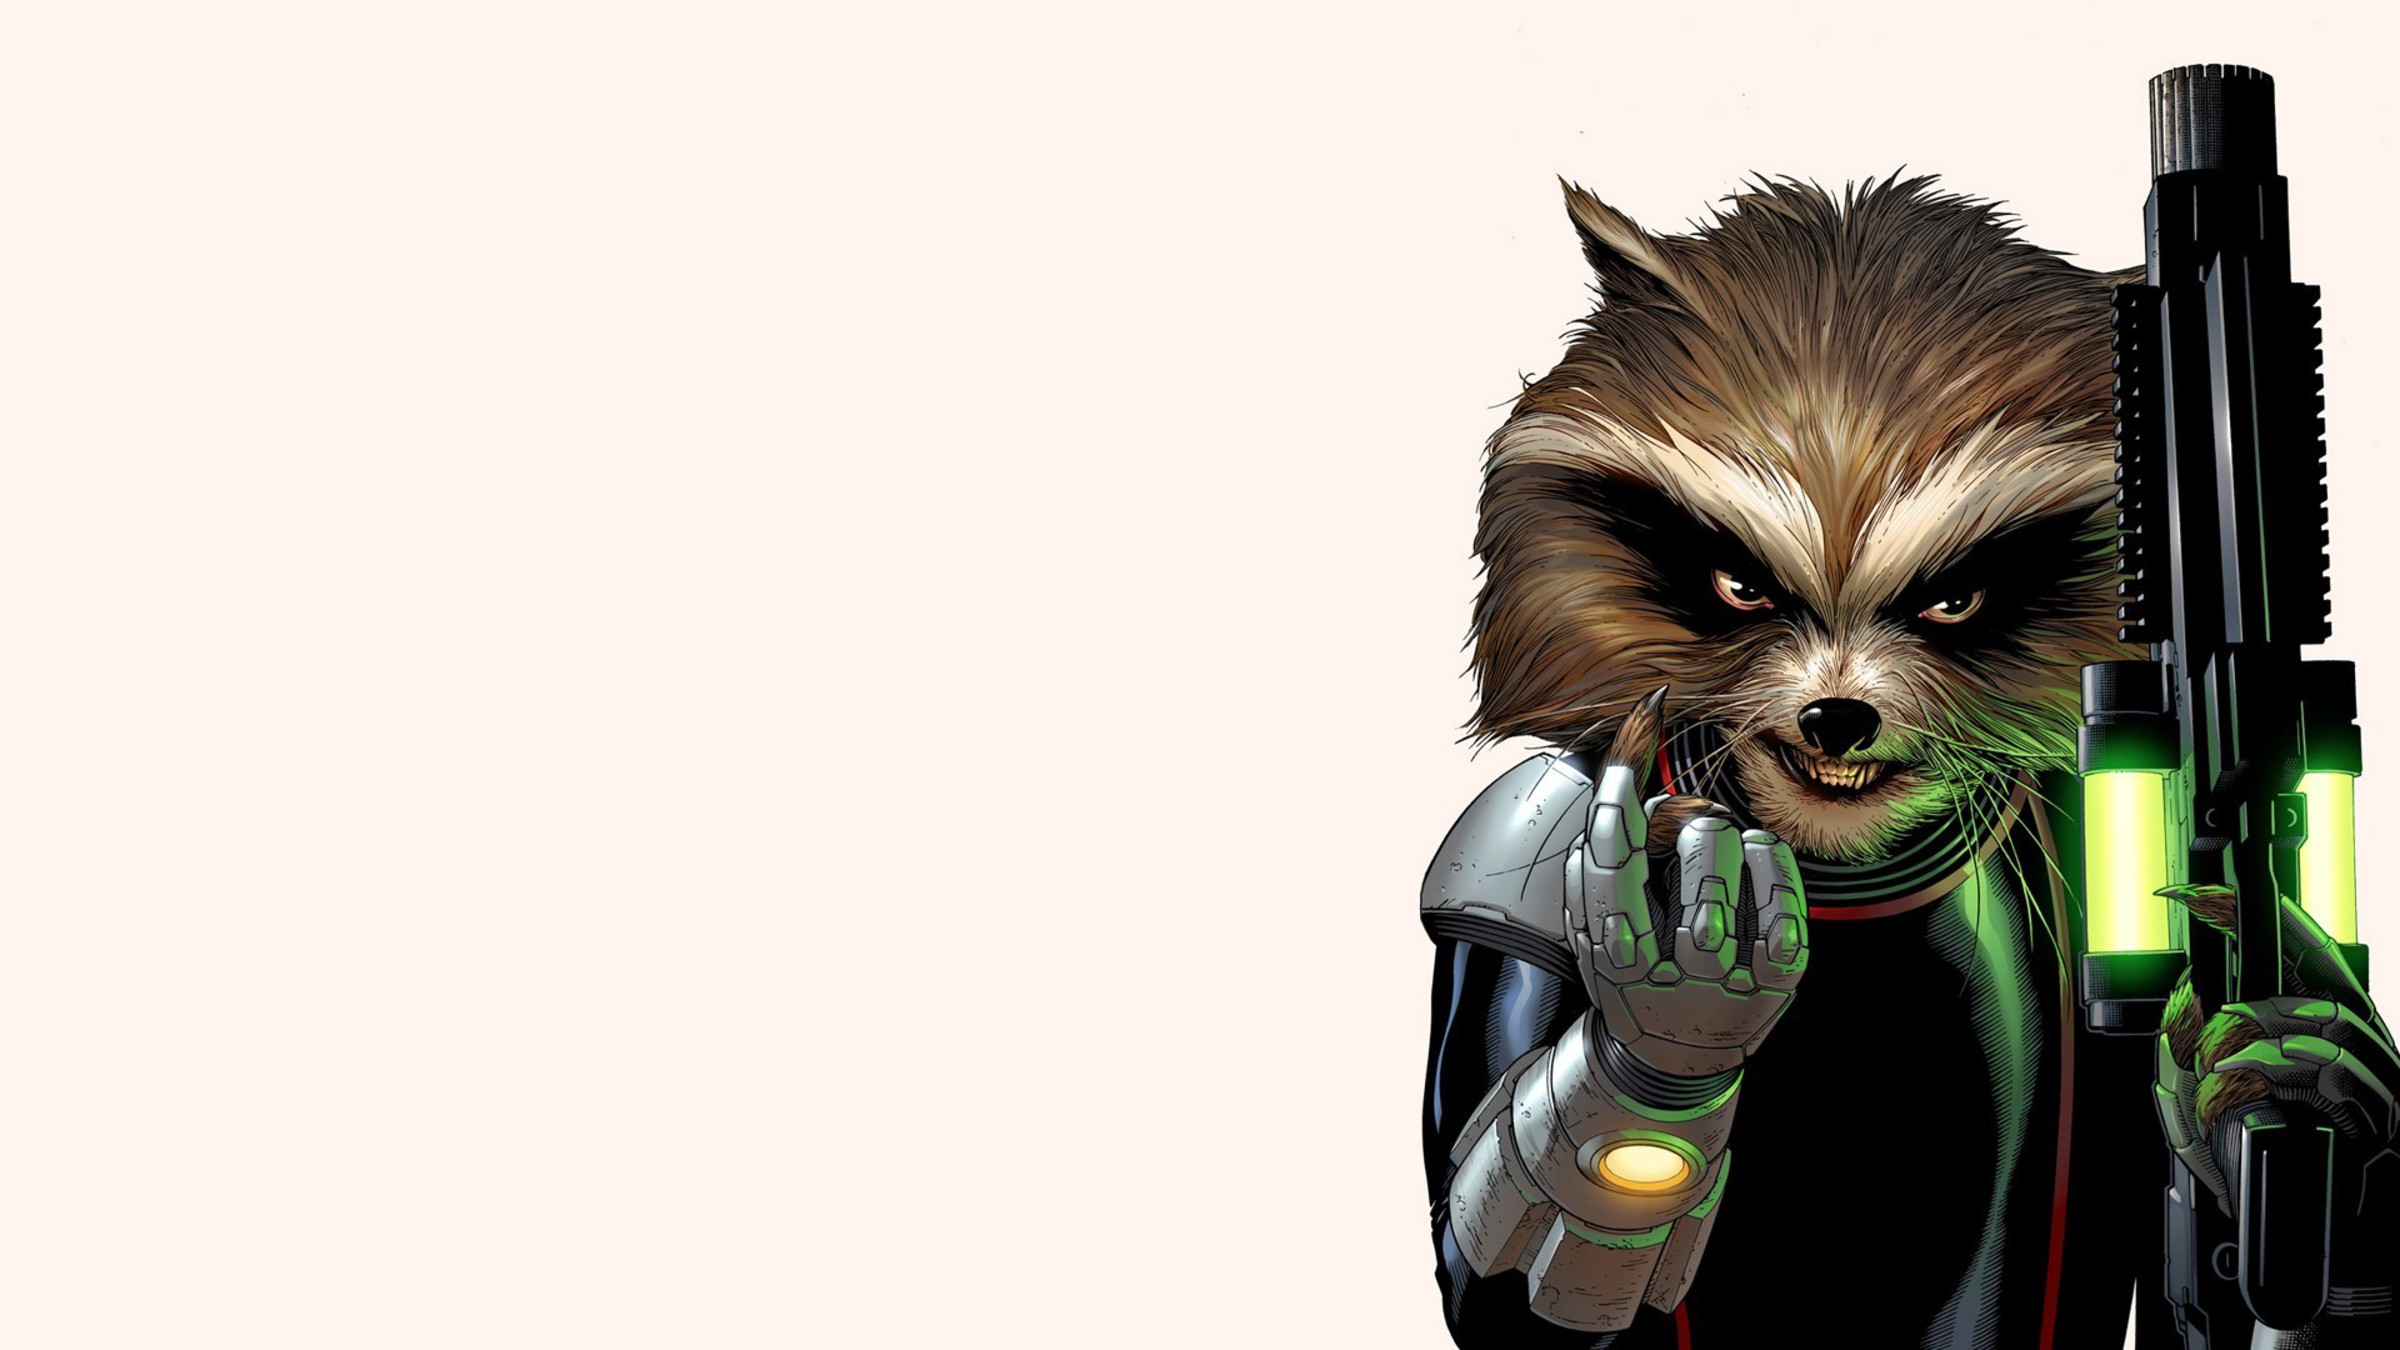 Comics Guardians Of The Galaxy Wallpaper Guardians Of The Galaxy